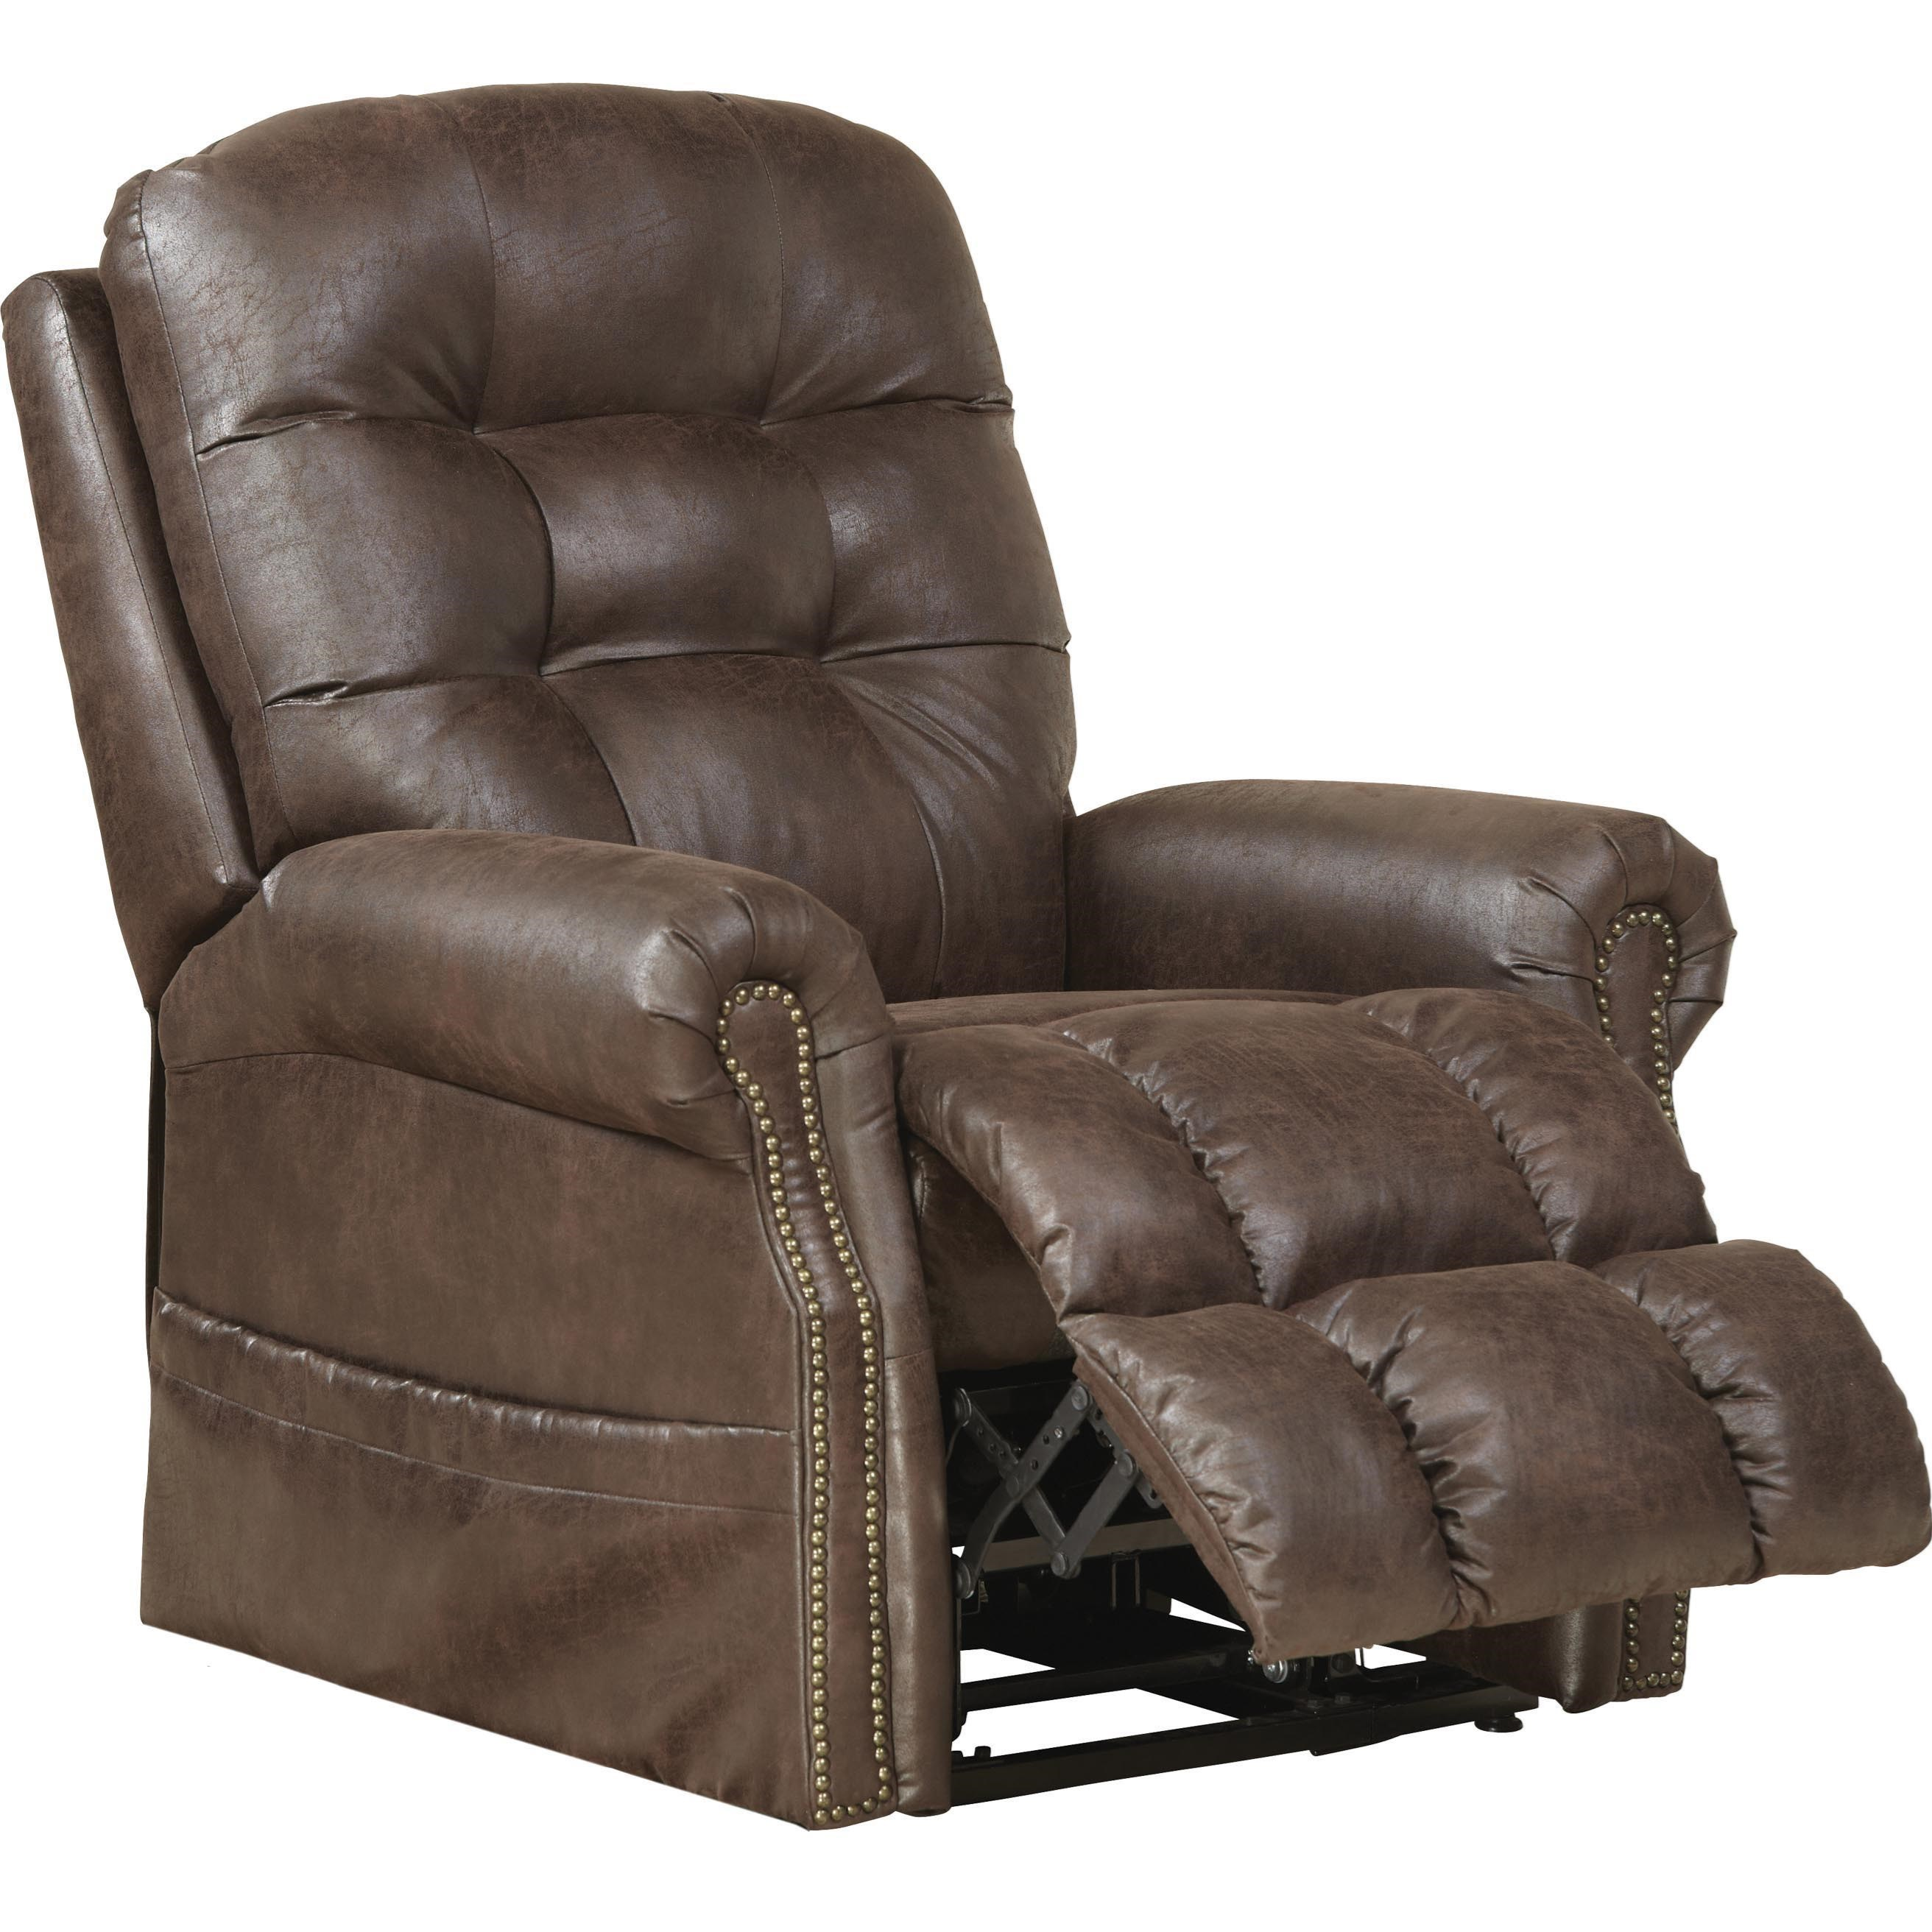 ... Catnapper Motion Chairs And ReclinersRamsey Lift Chair With Heat And  Massage ...